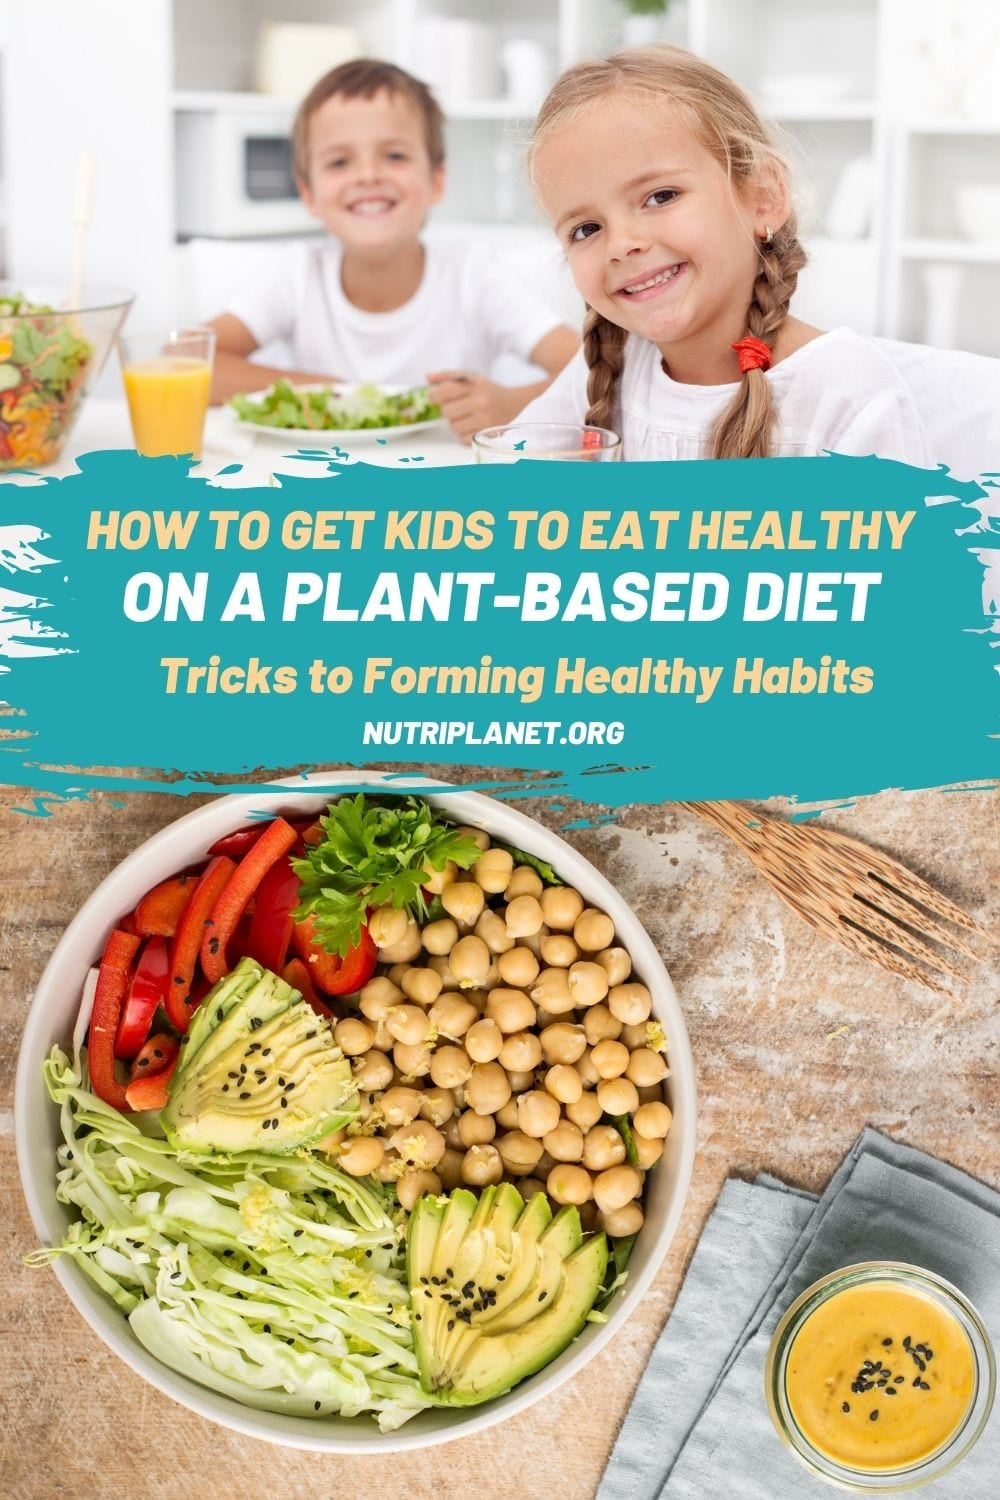 Learn how to get kids to eat healthy on a plant-based diet. Tricks and hacks on forming healthy habits right from the beginning.